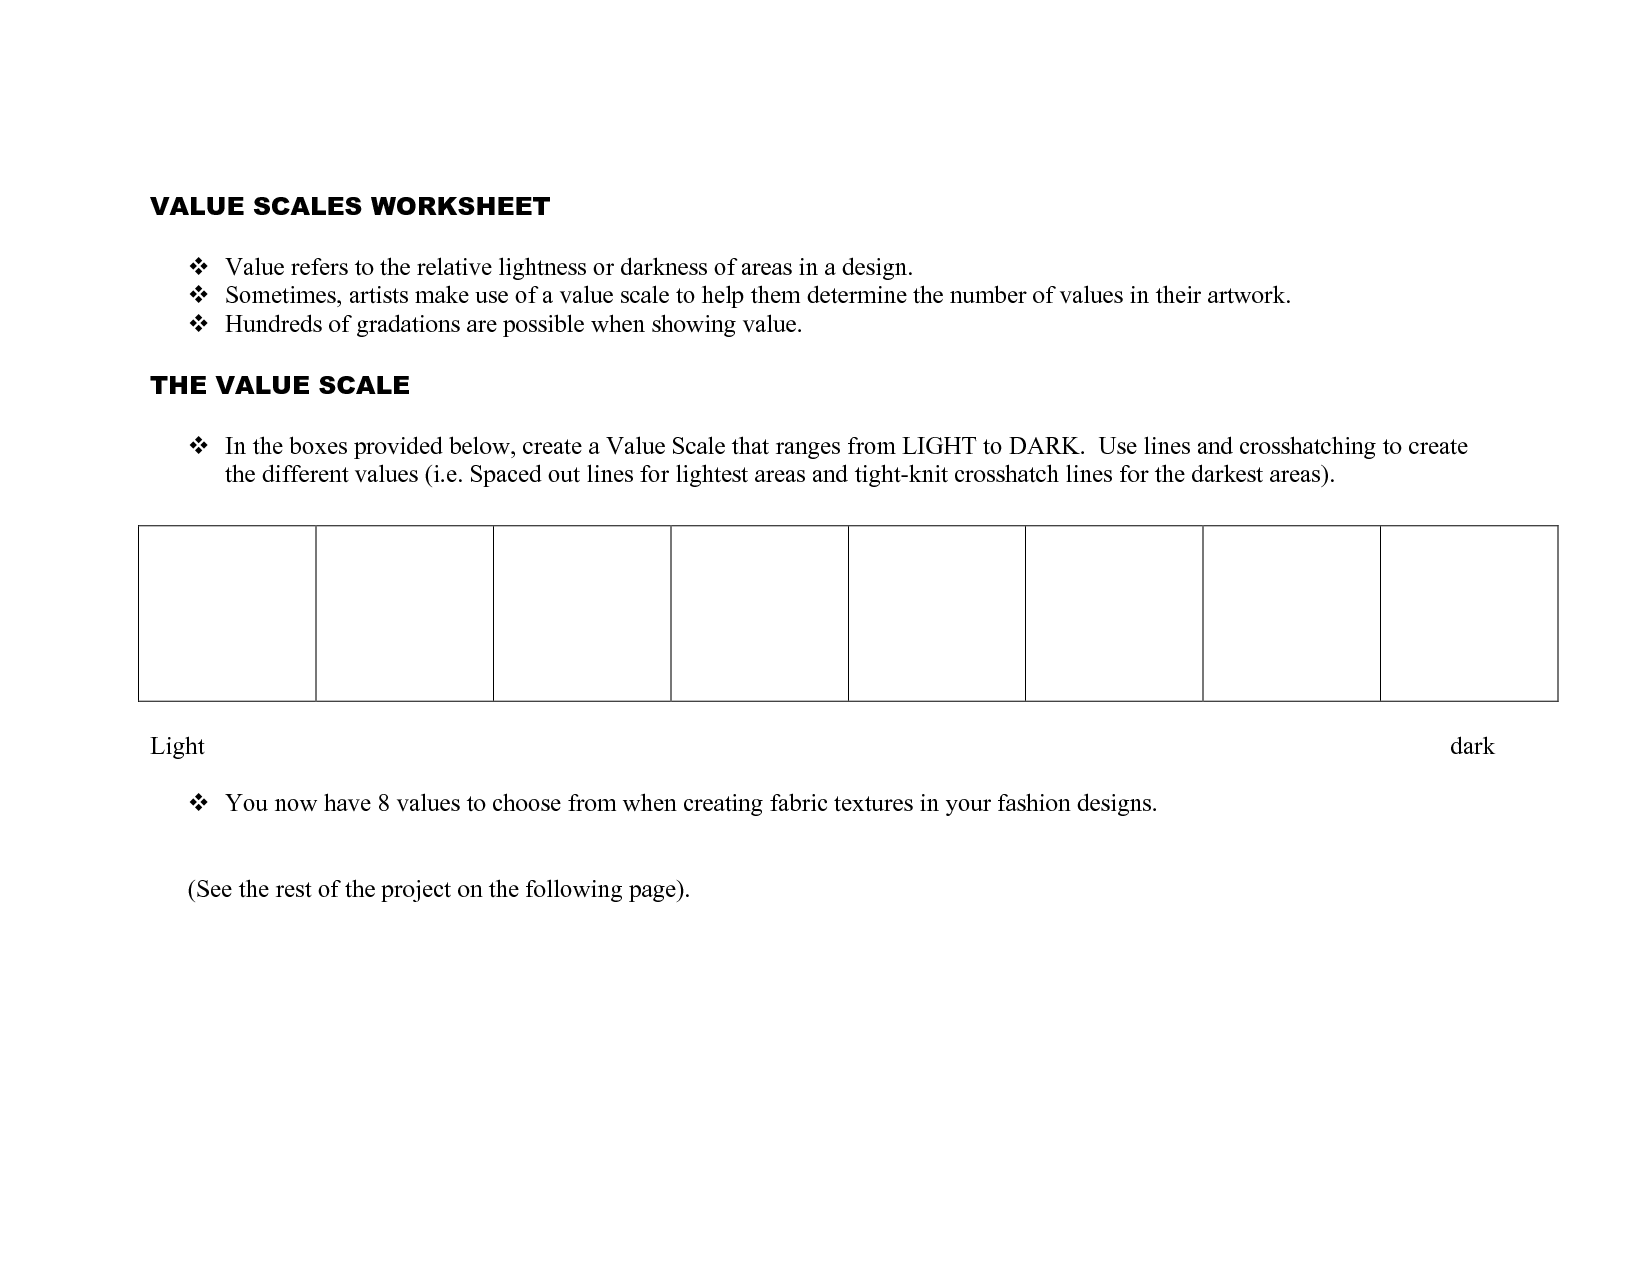 worksheet Value Scale Worksheet scale worksheet value pinterest worksheets art handouts and worksheet